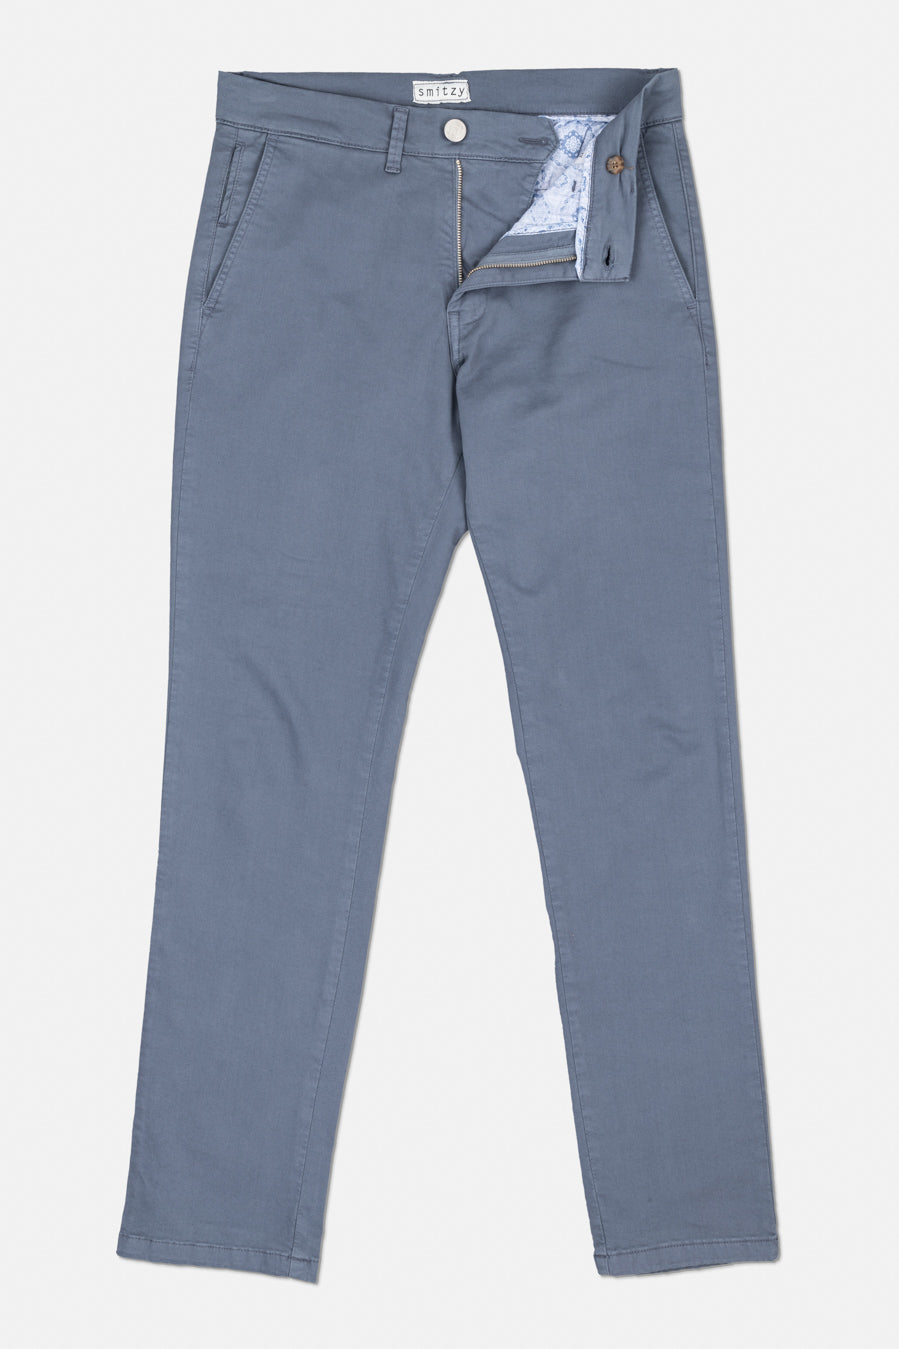 Washed Chino Extra Slim Formentera Blues